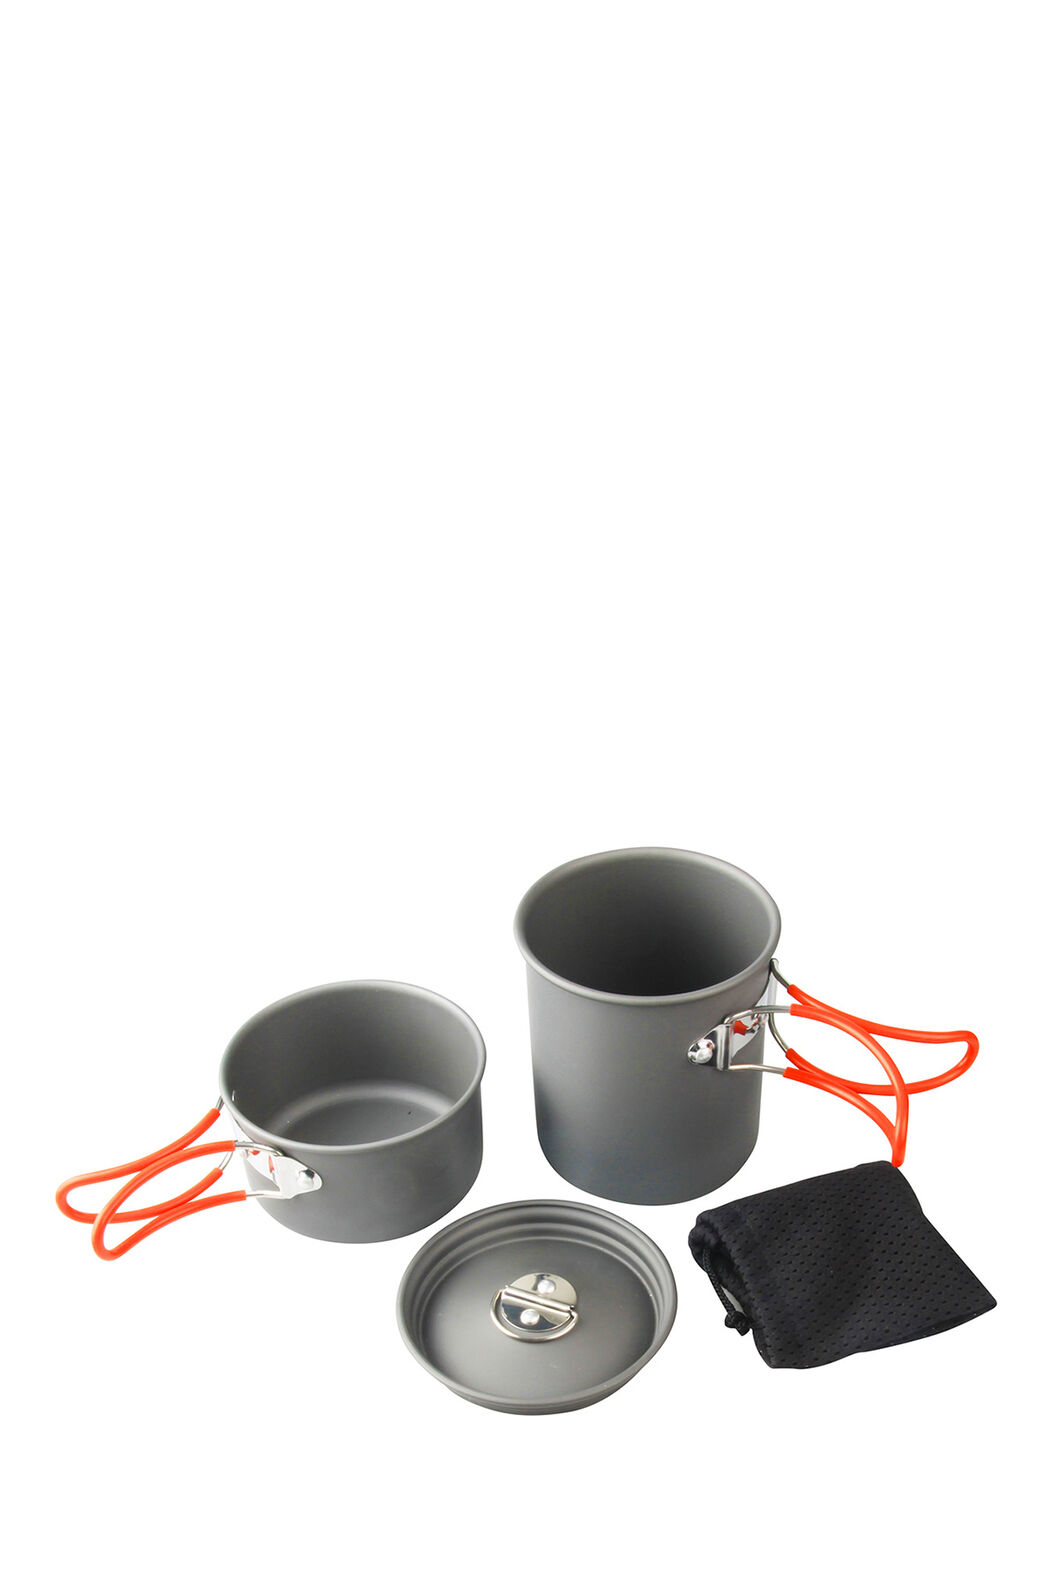 Outrak 1 Person Cooking Set, None, hi-res